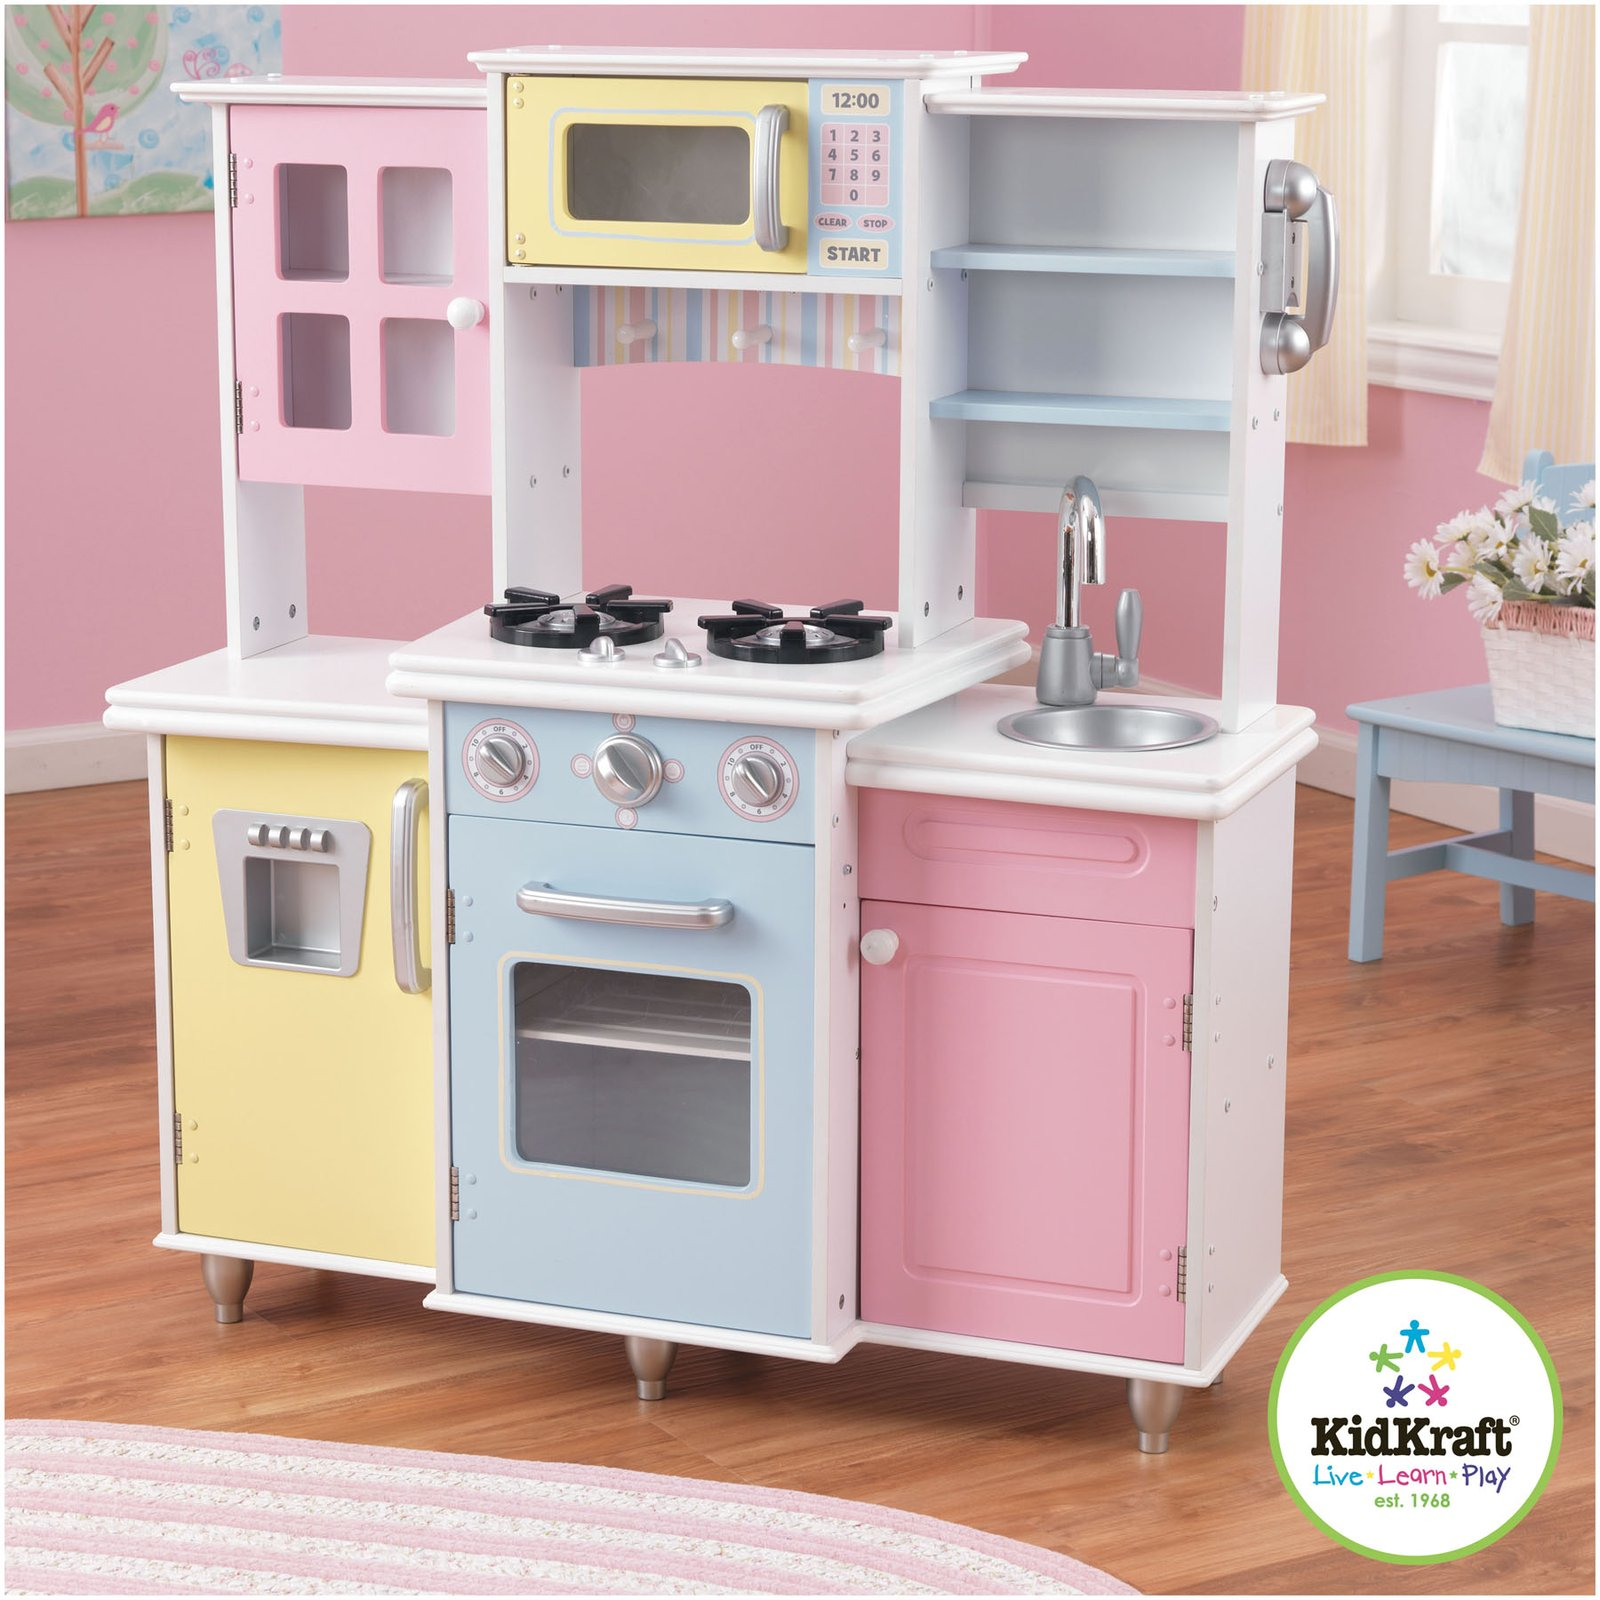 Wooden kitchen set for toddlers Photo - 7